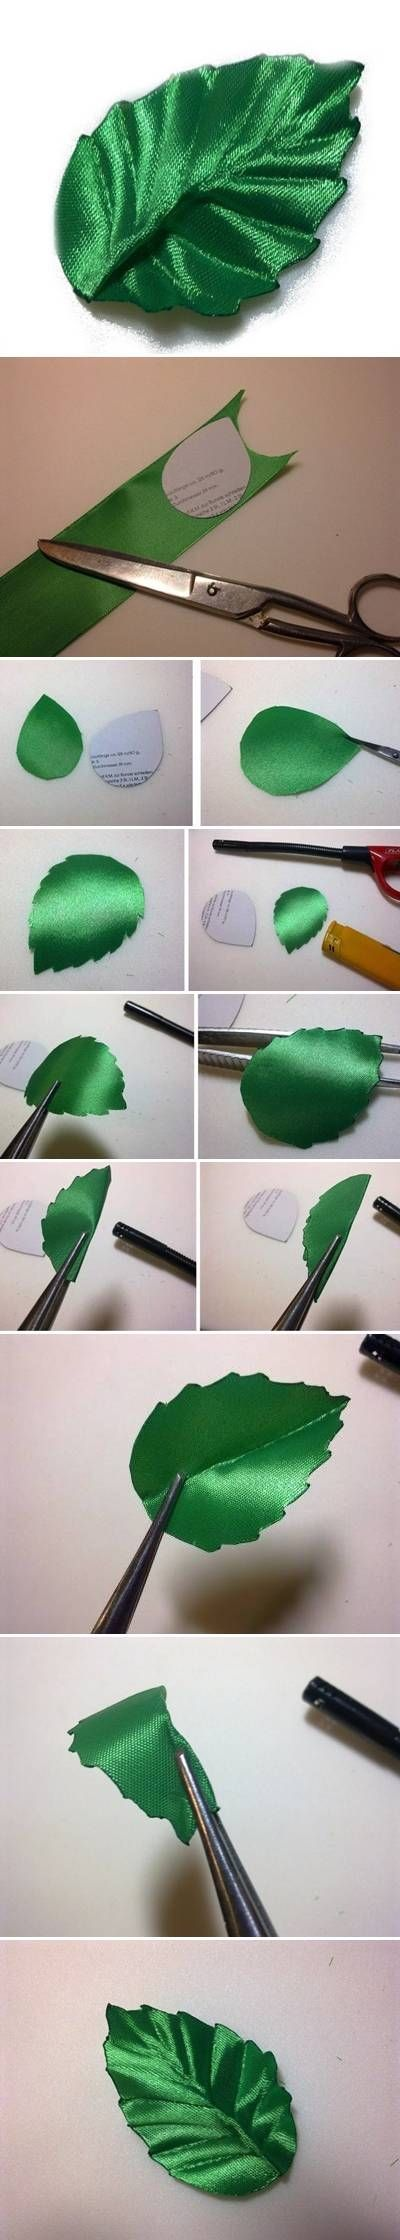 DIY RIbbon Leaf Pictures, Photos, and Images for Facebook, Tumblr, Pinterest, and Twitter